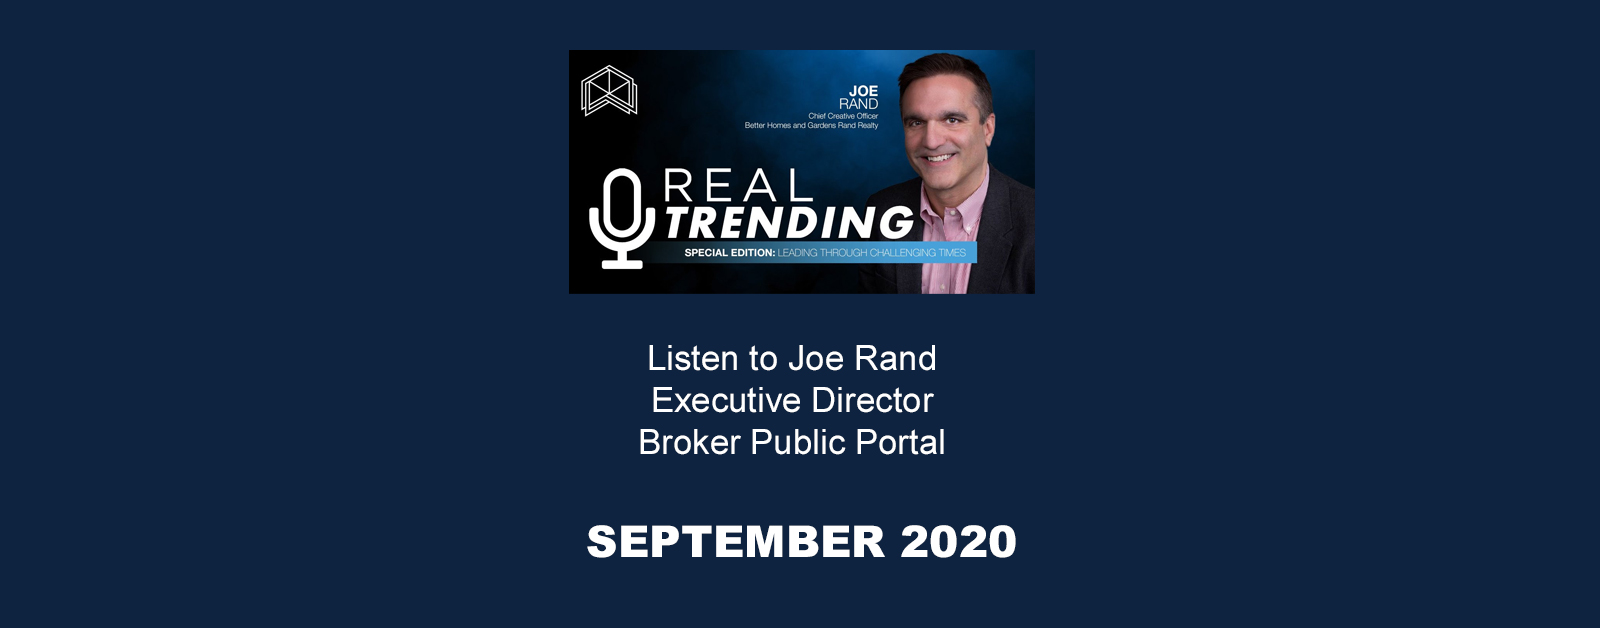 REAL Trends - REAL TRENDING Podcast